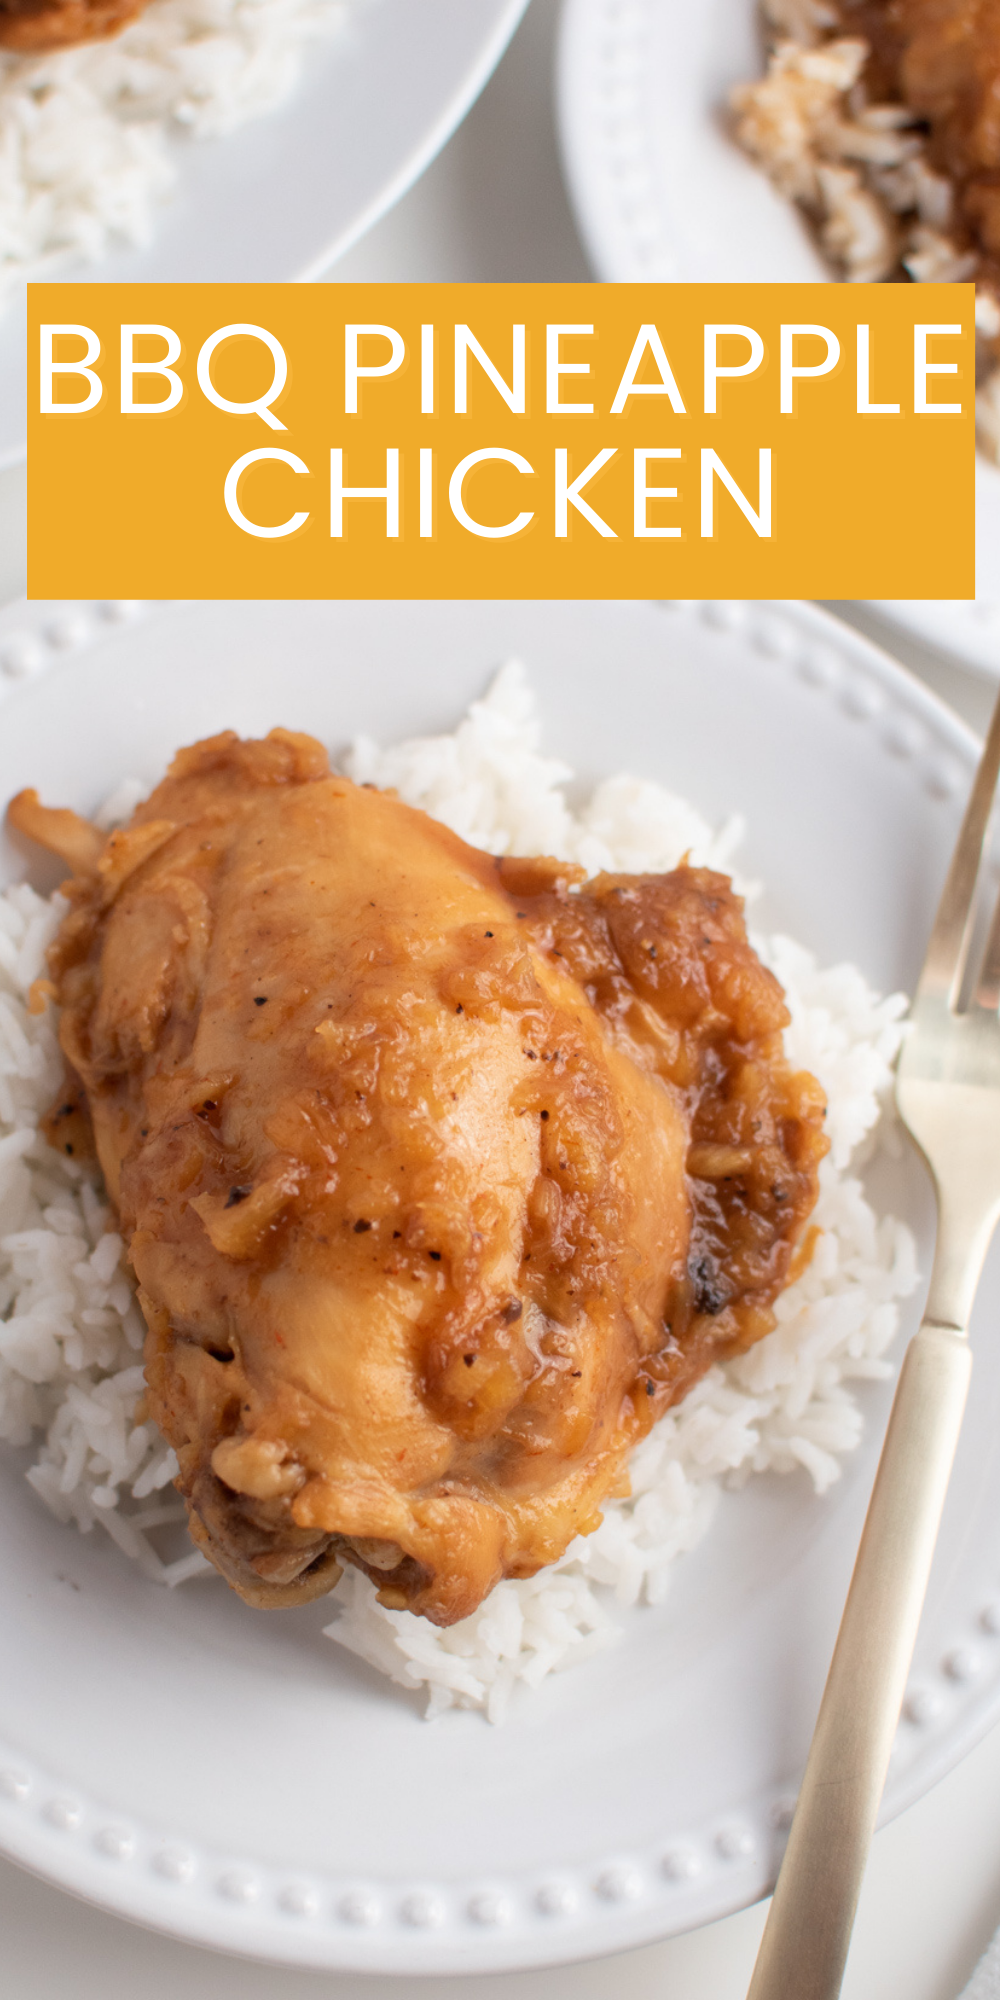 Pinterest graphic with text and BBQ pineapple chicken.